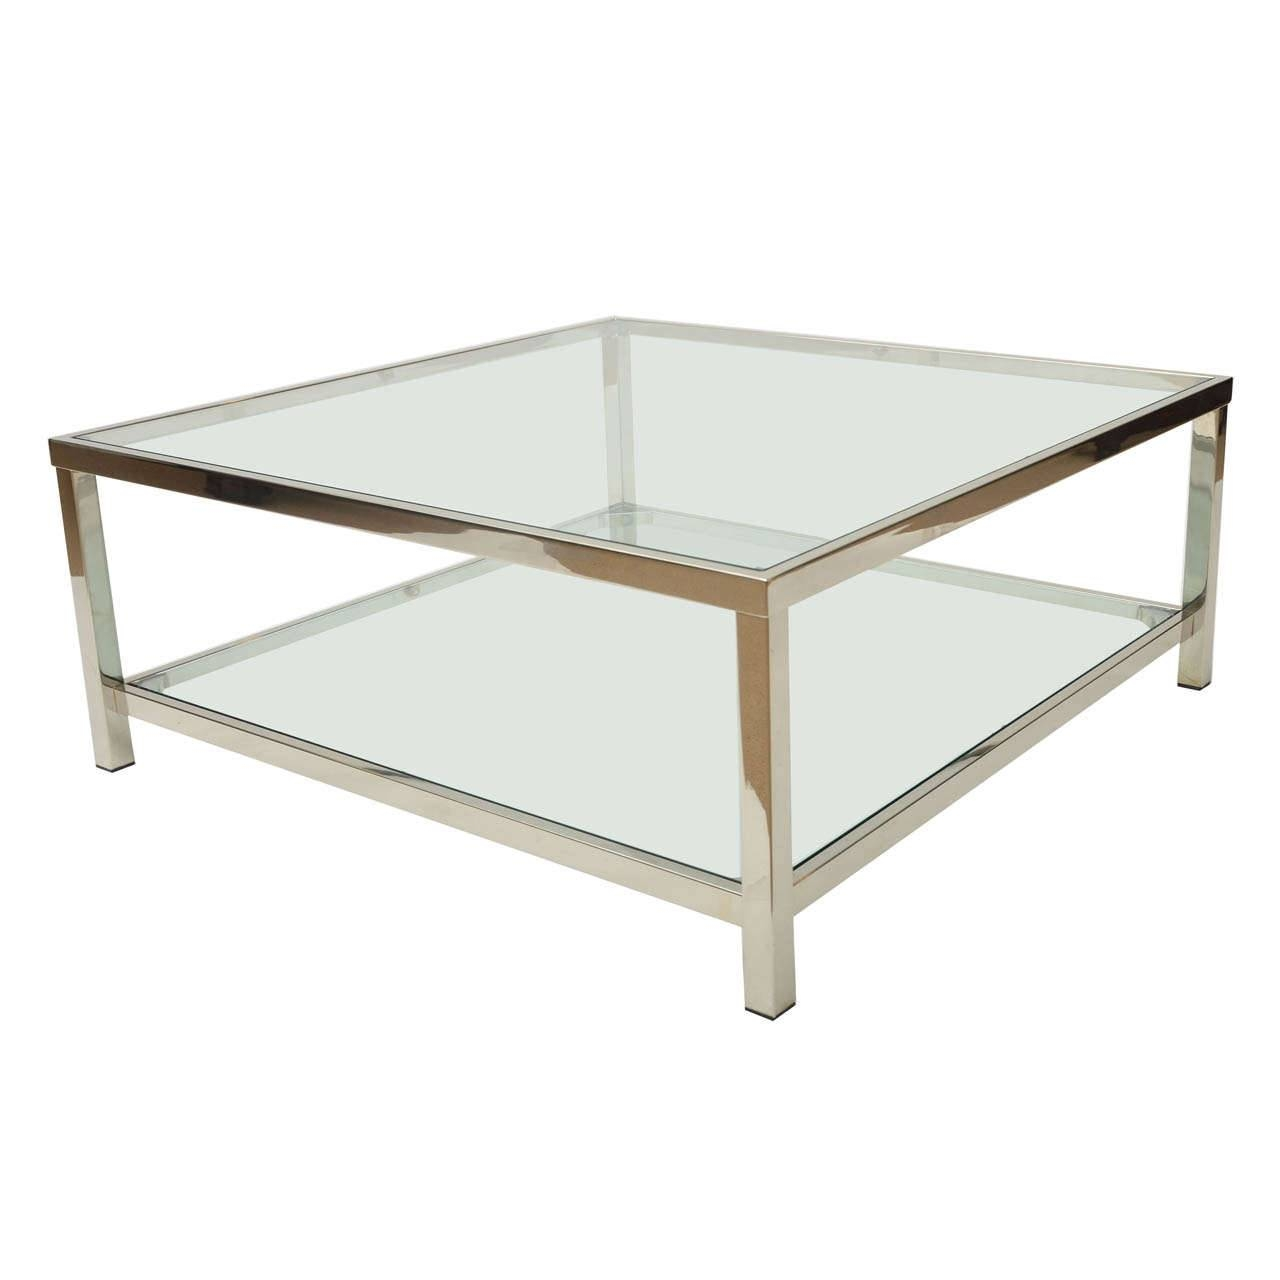 Coffee Table: Astonishing Chrome And Glass Coffee Table Ikea in Rectangle Glass Chrome Coffee Tables (Image 9 of 30)